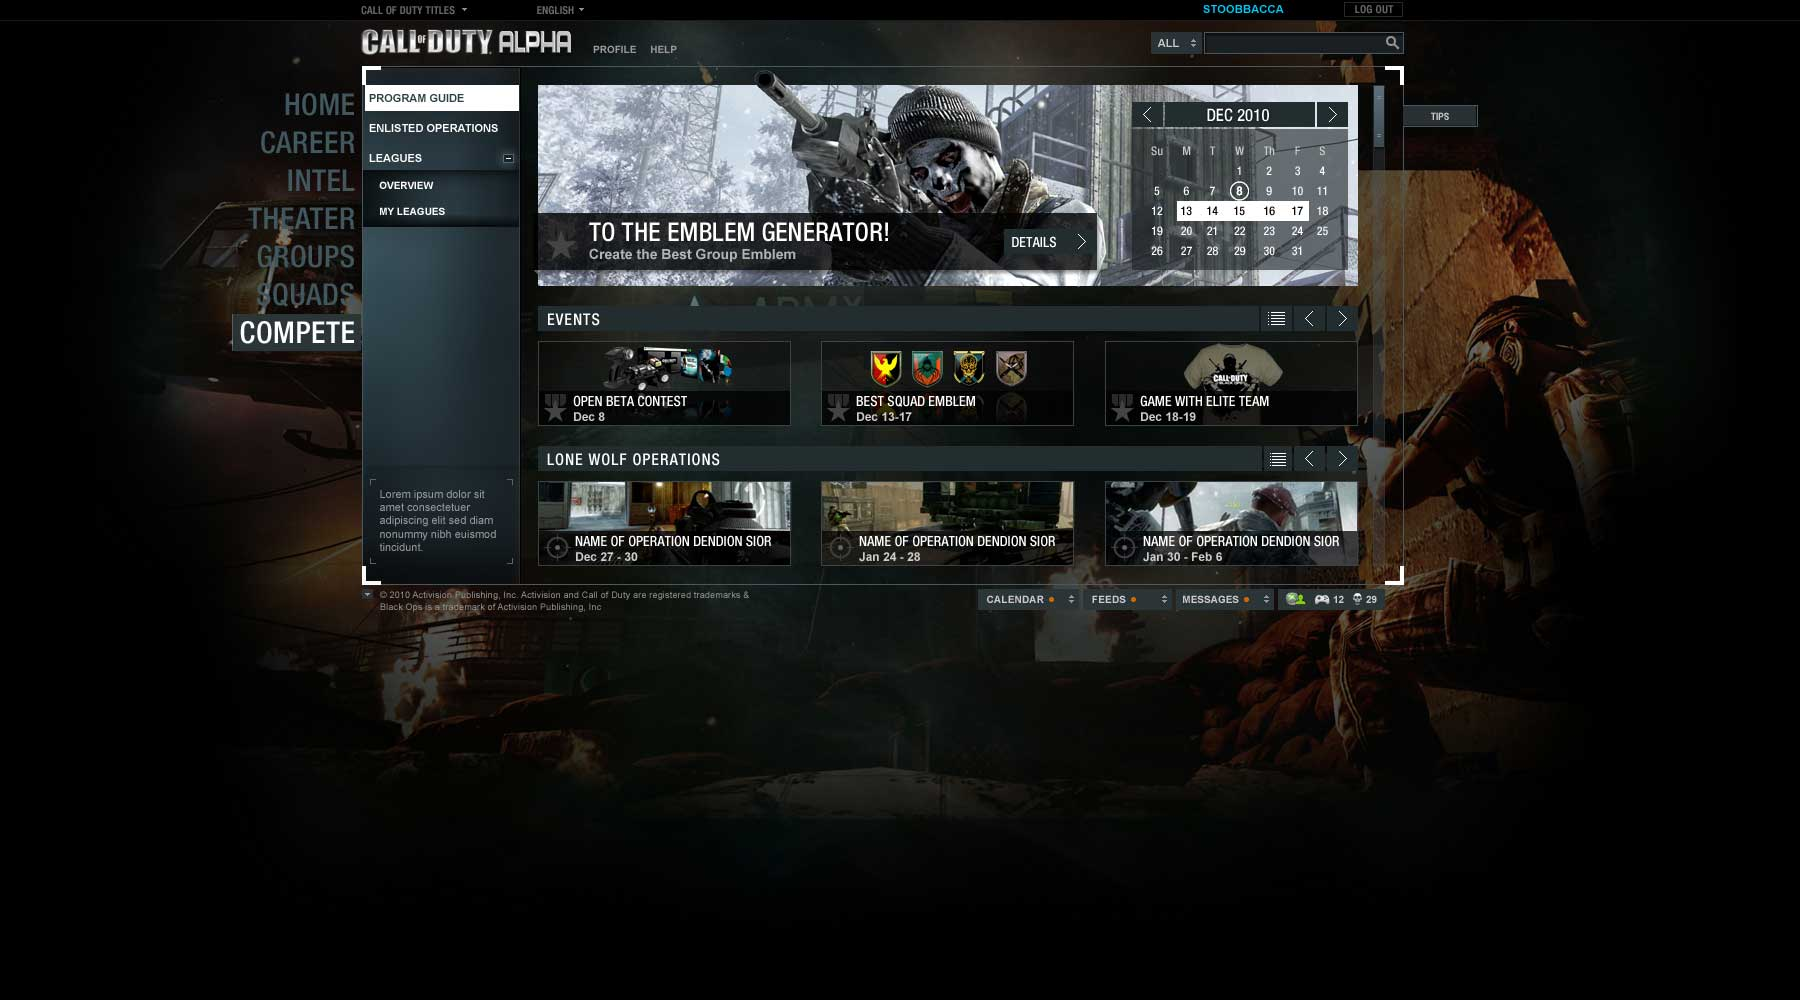 Activision Call of Duty: Blackops - Compete: Program Guide 2